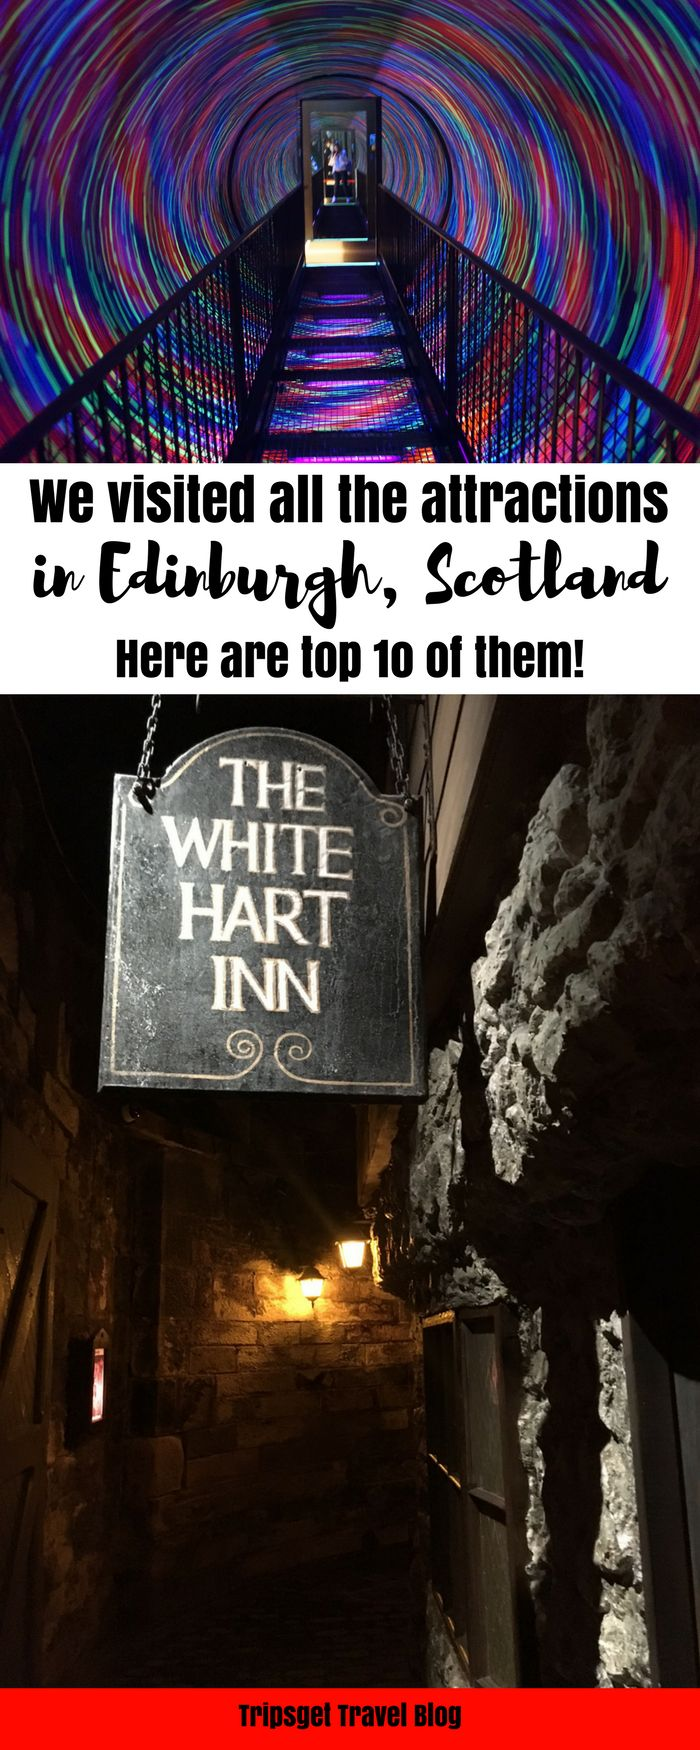 10 absolutely best attractions in Edinburgh, Scotland - Camera Obscura, Edinburgh Castle, Holyrood Palace, Royal Yacht Britannia, Mary King's Close, Edinburgh Vaults, Edinburgh Zoo, Red Panda,